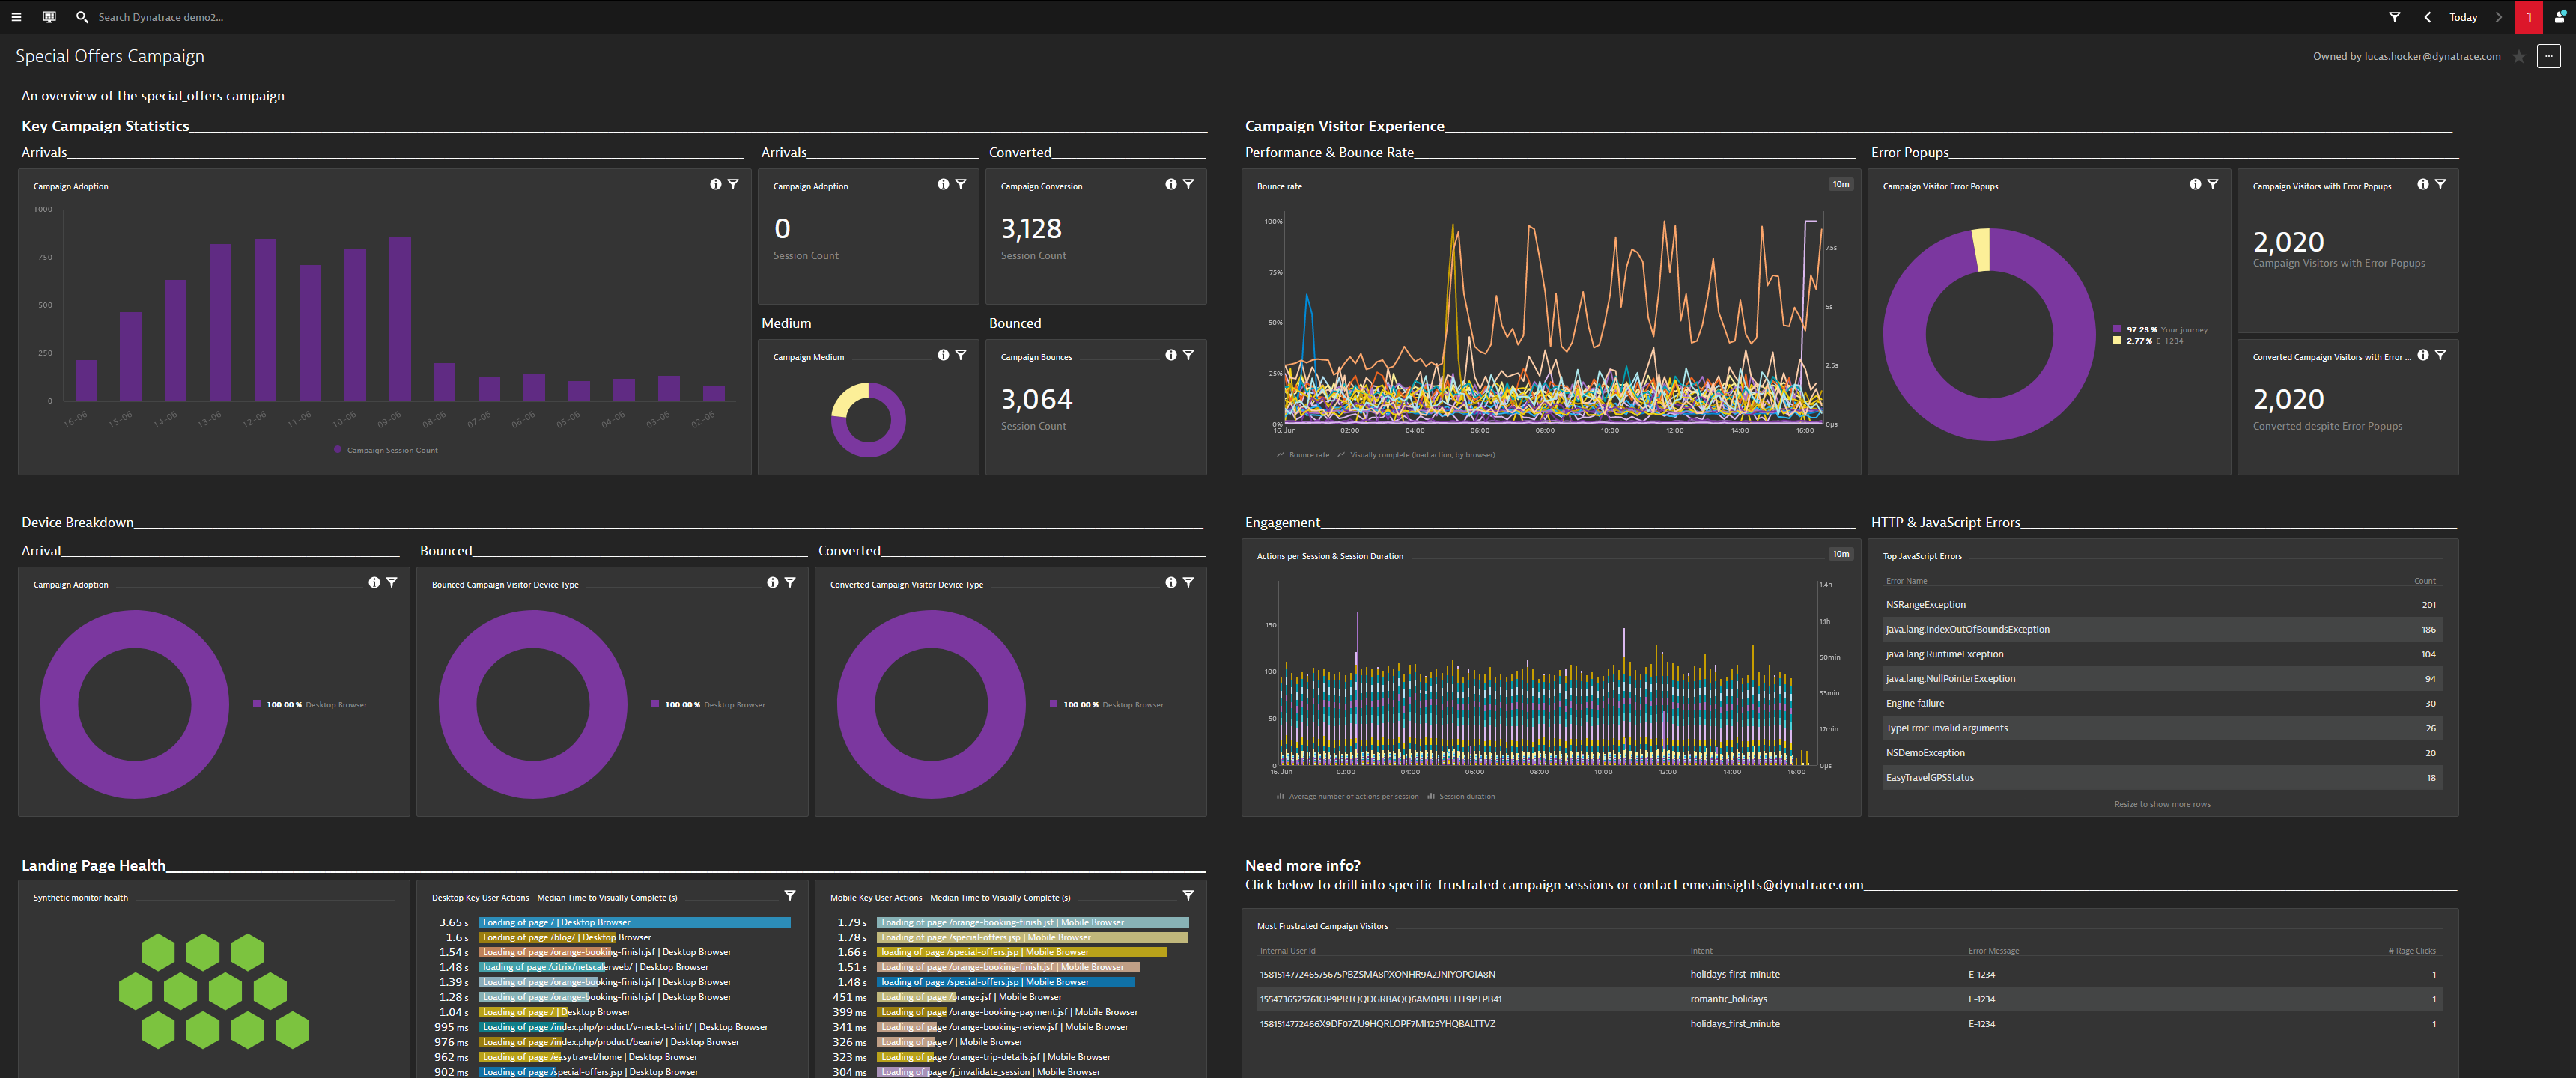 Special campaign tracking dashboard in Dynatrace